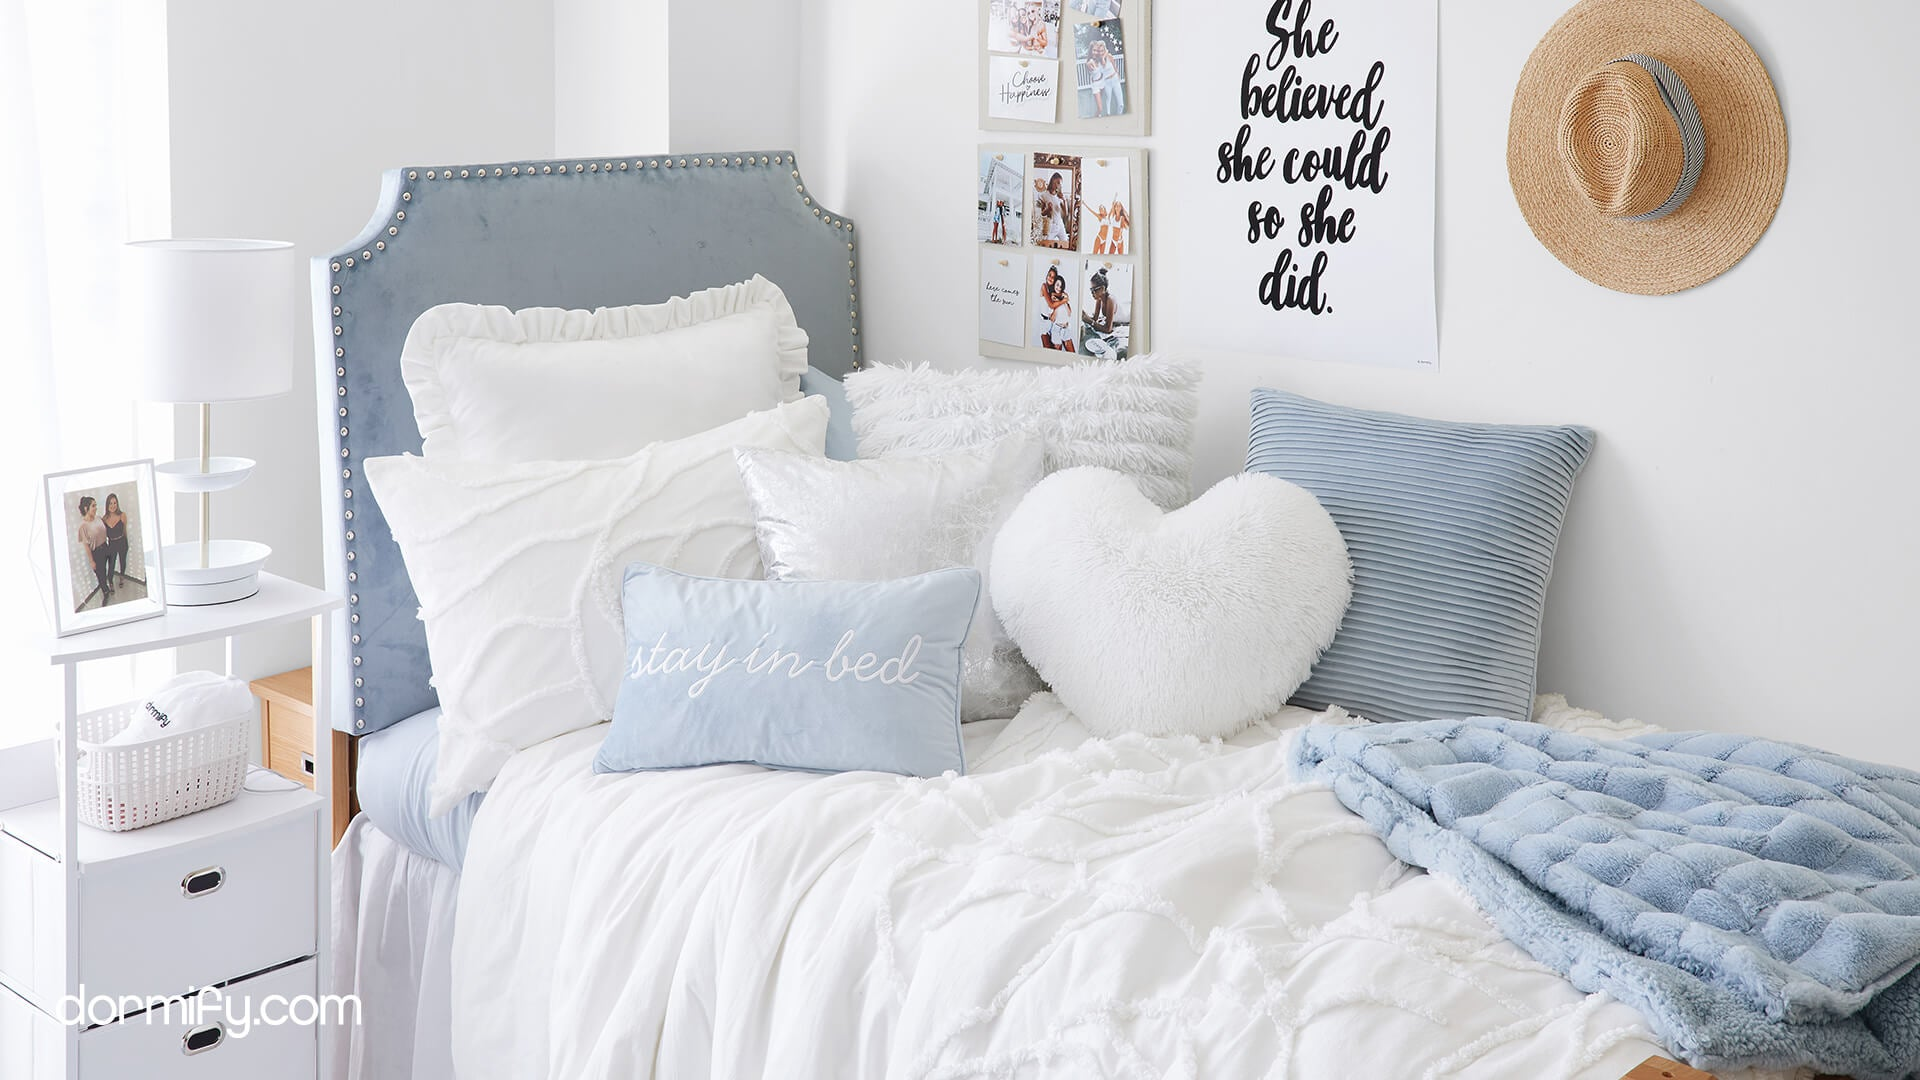 White and blue girls bedding with comforter set and pillows from Dormify